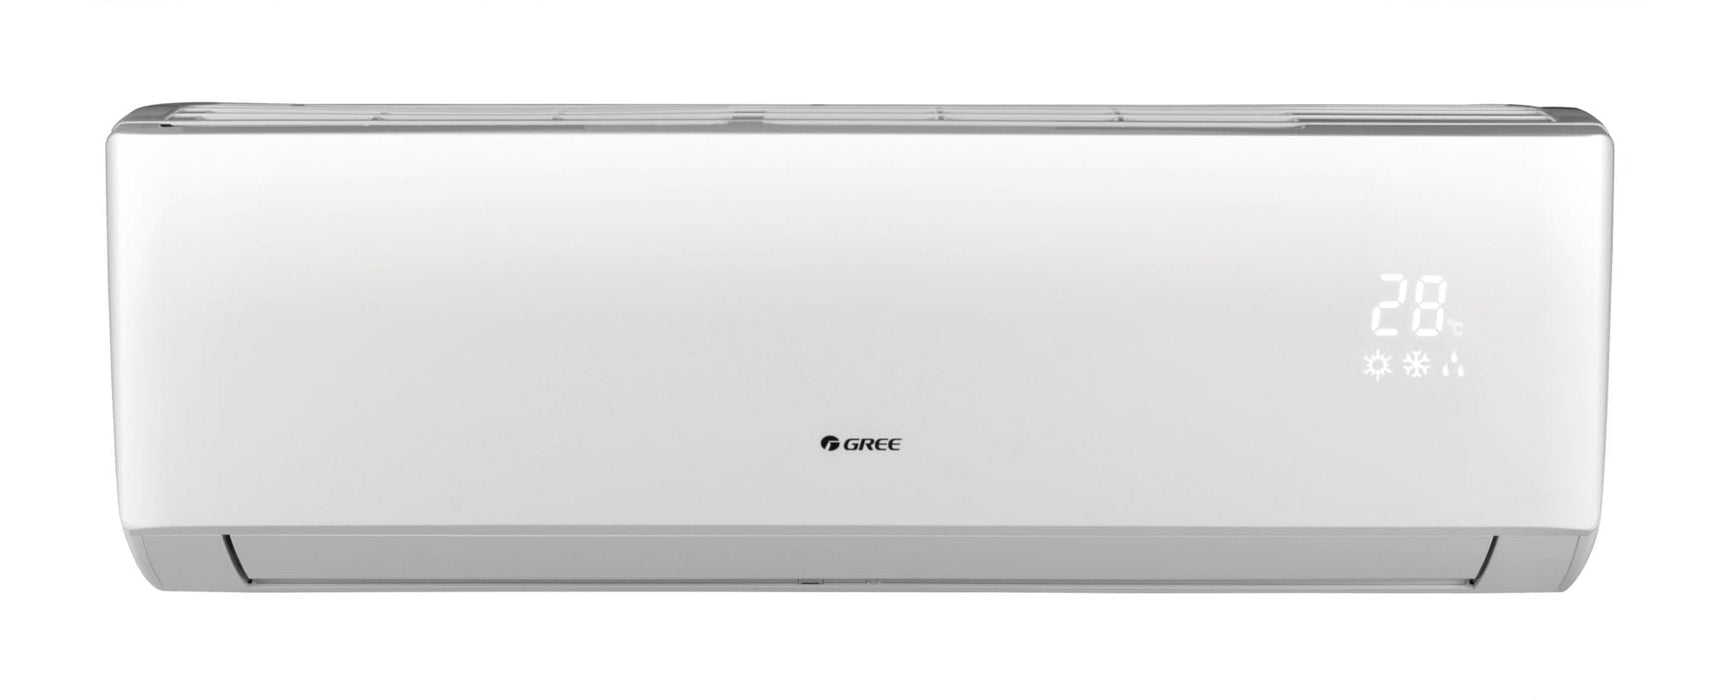 Gree 9,000 BTU 23 SEER VIREO+ Wall Mount Ductless Mini Split Indoor Unit 208-230V